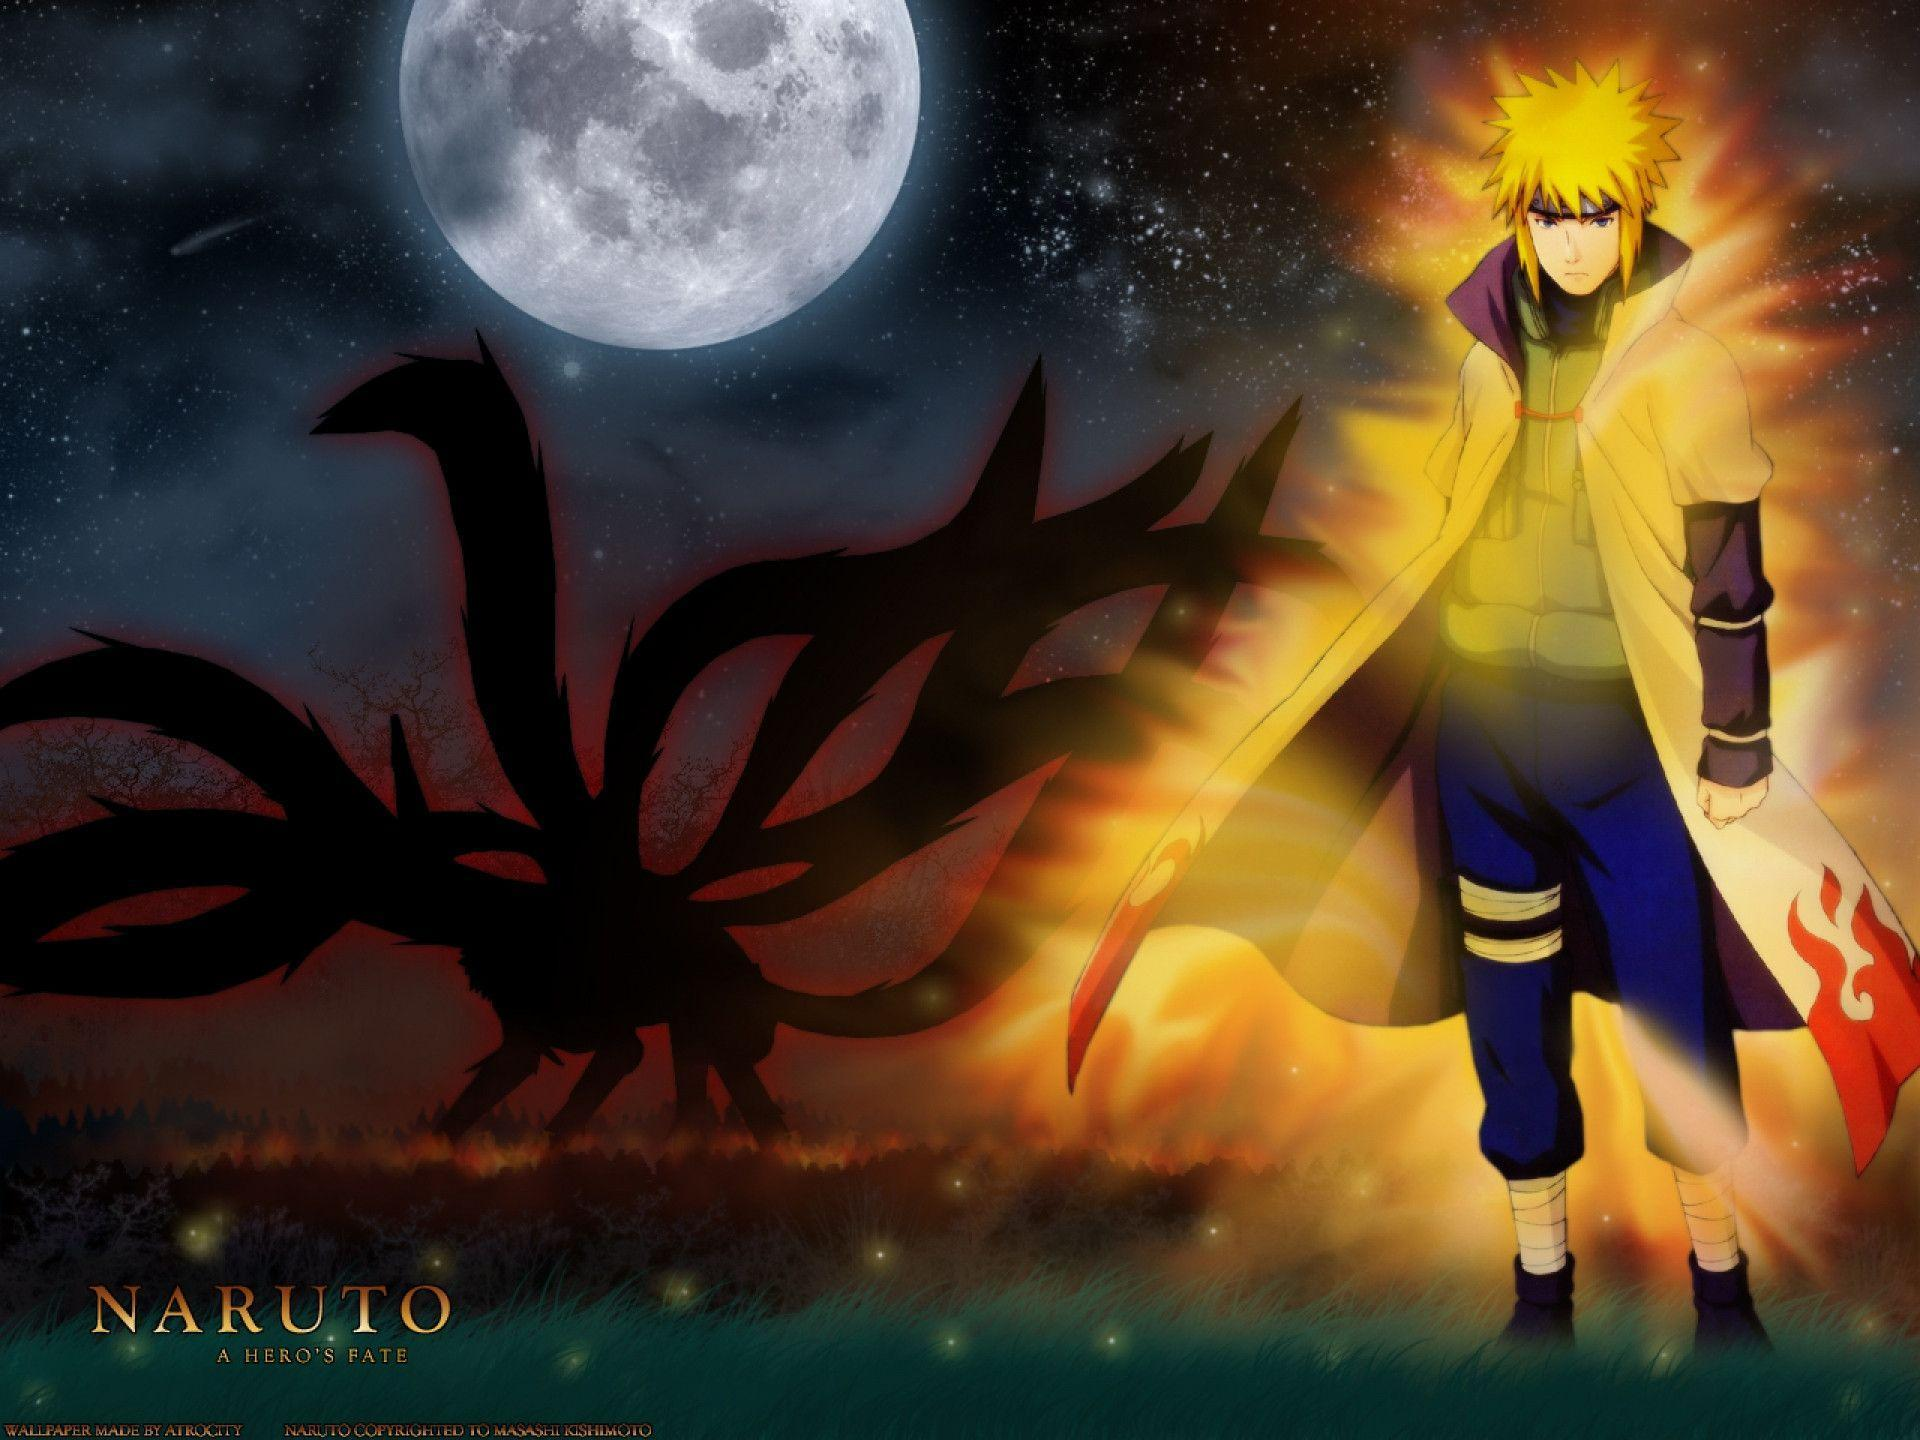 Naruto Shippuden Image Free Cartoon Wallpapers Naruto Shippuden